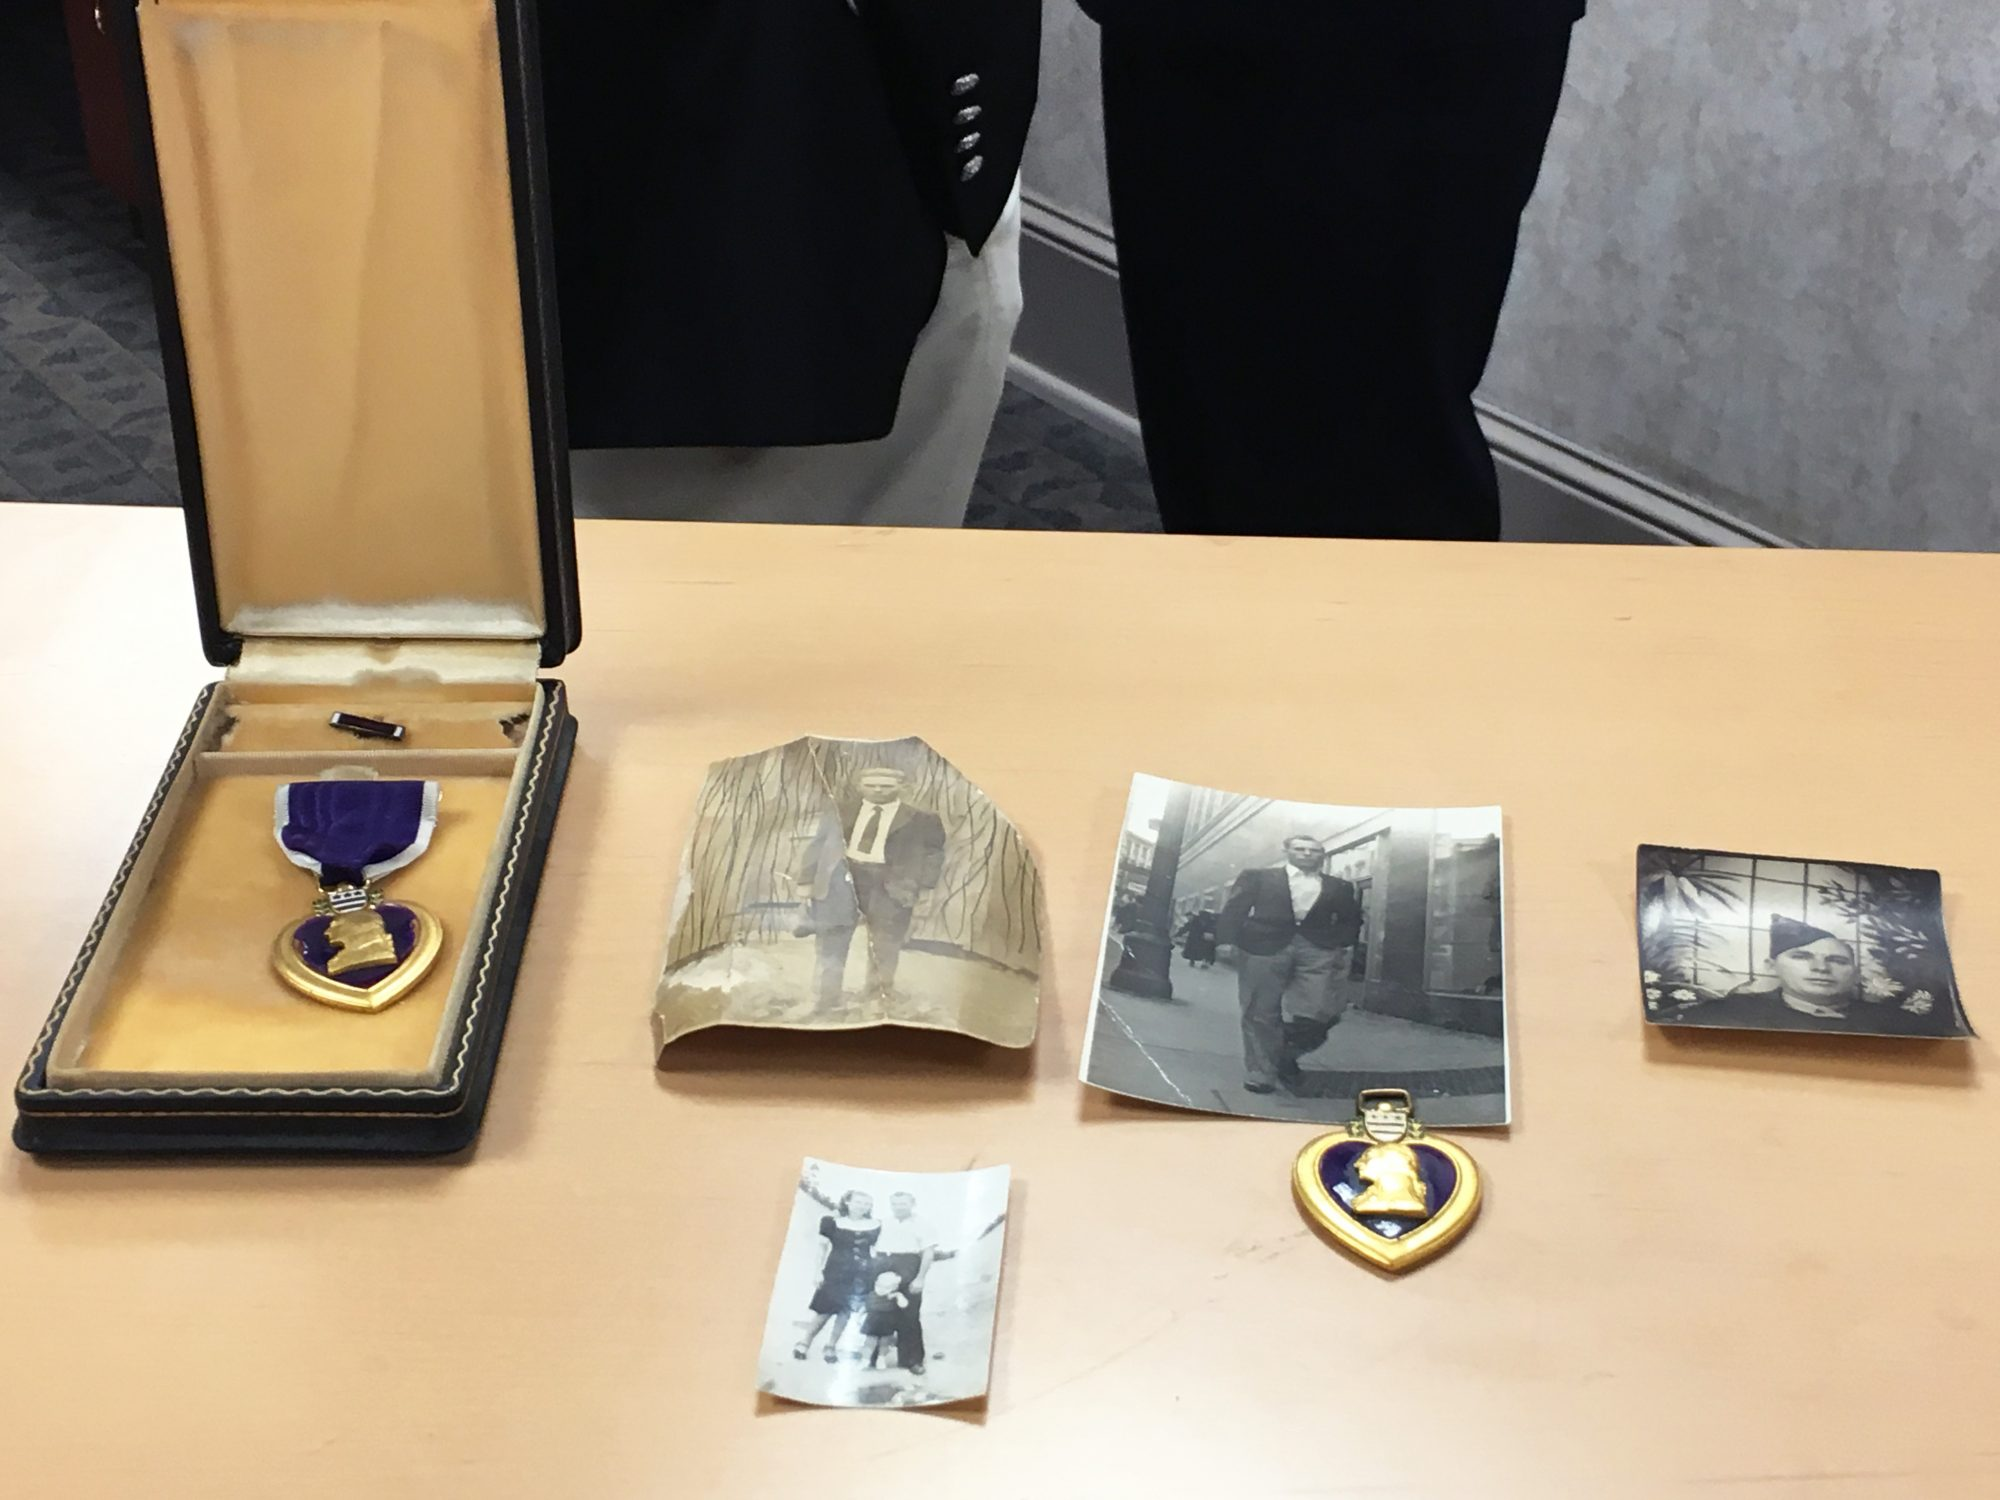 Claude Parris Military Honors and Medals